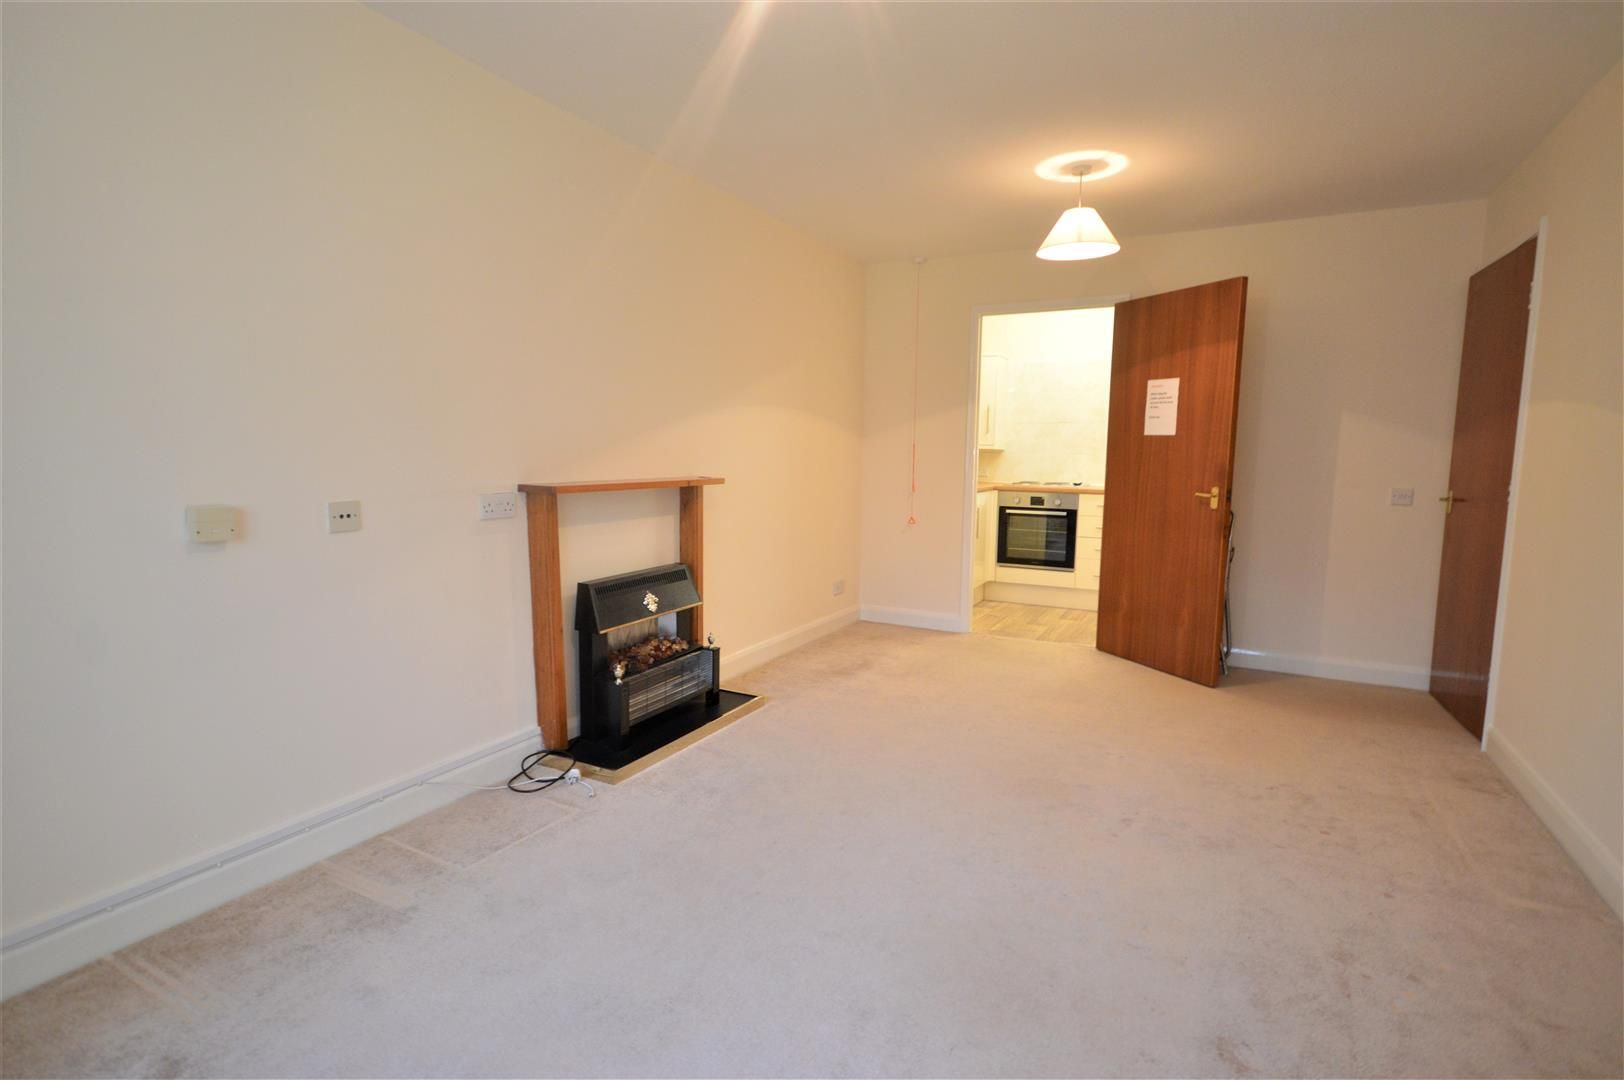 1 bed retirement-property for sale in Leominster  - Property Image 3